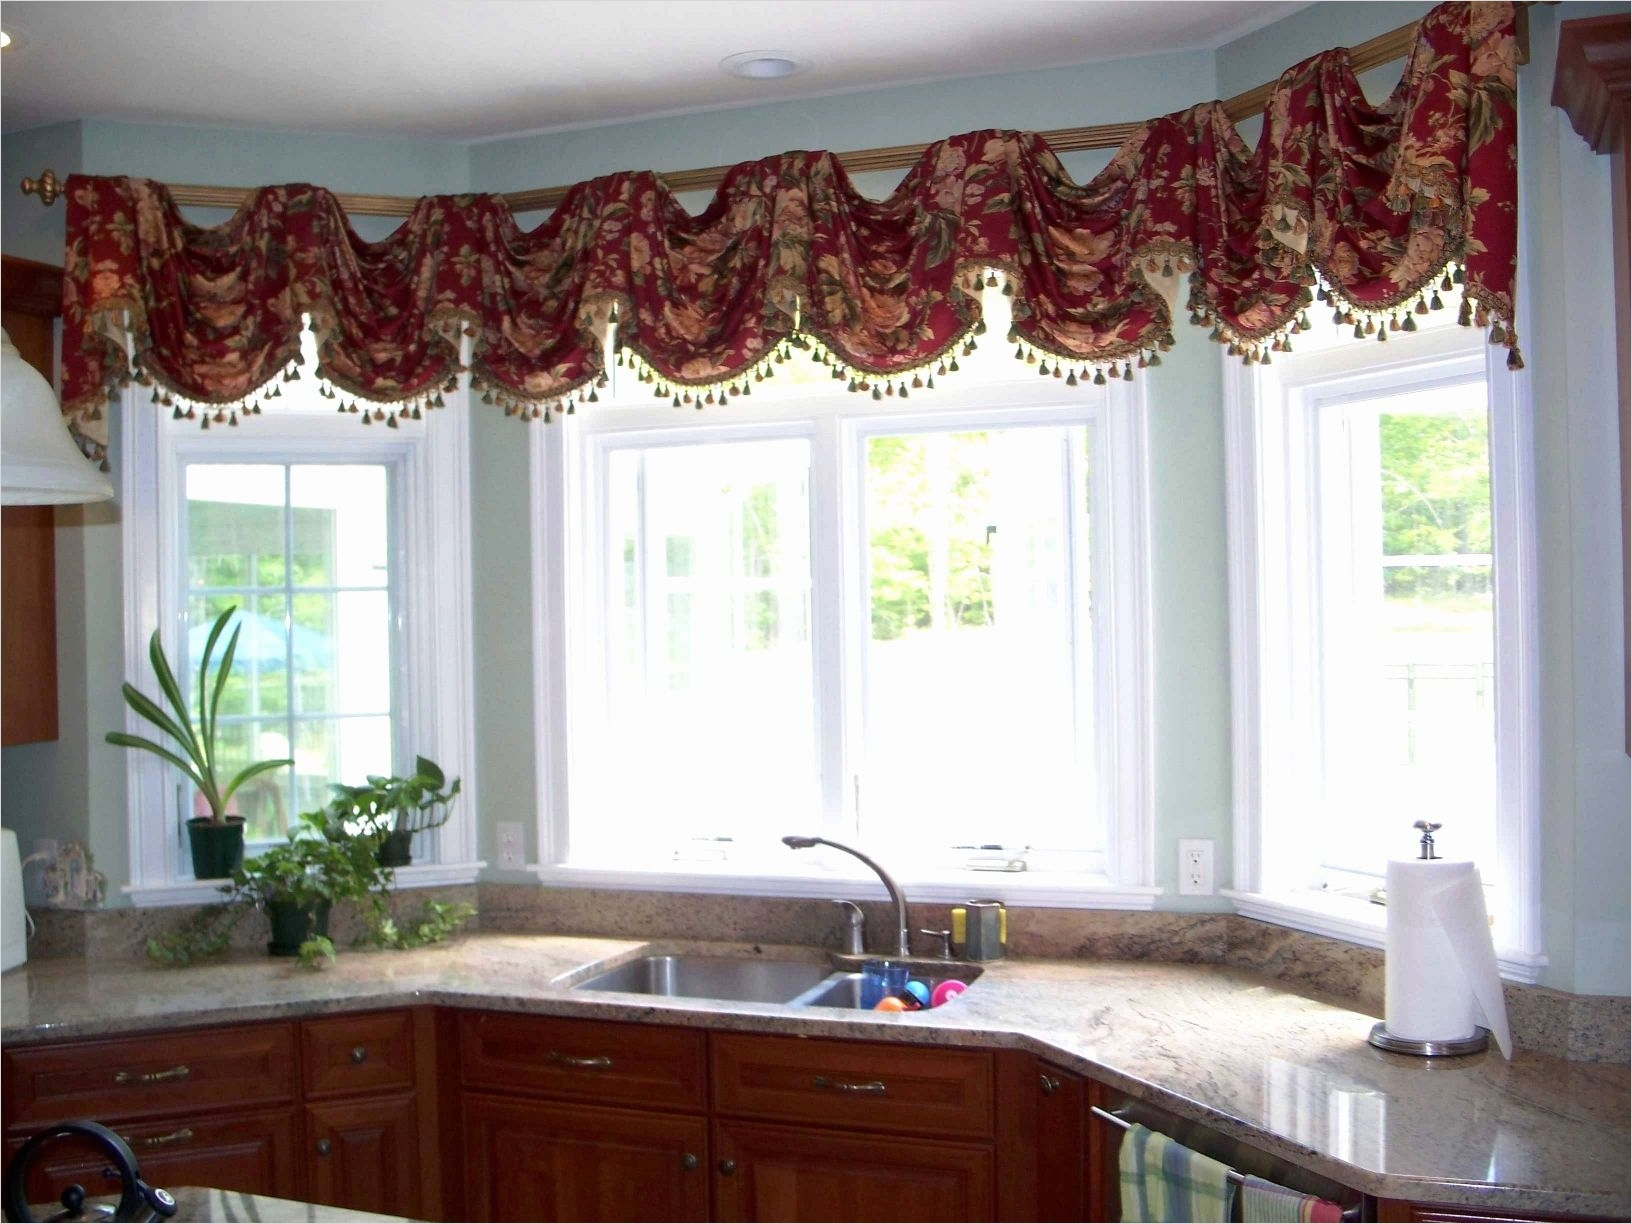 41 Perfect Farmhouse Country Kitchen Curtain Valances 36 Curtain Farmhouse Style Valances Modern Farmhouse Valance French Country Kitchen Curtains 5